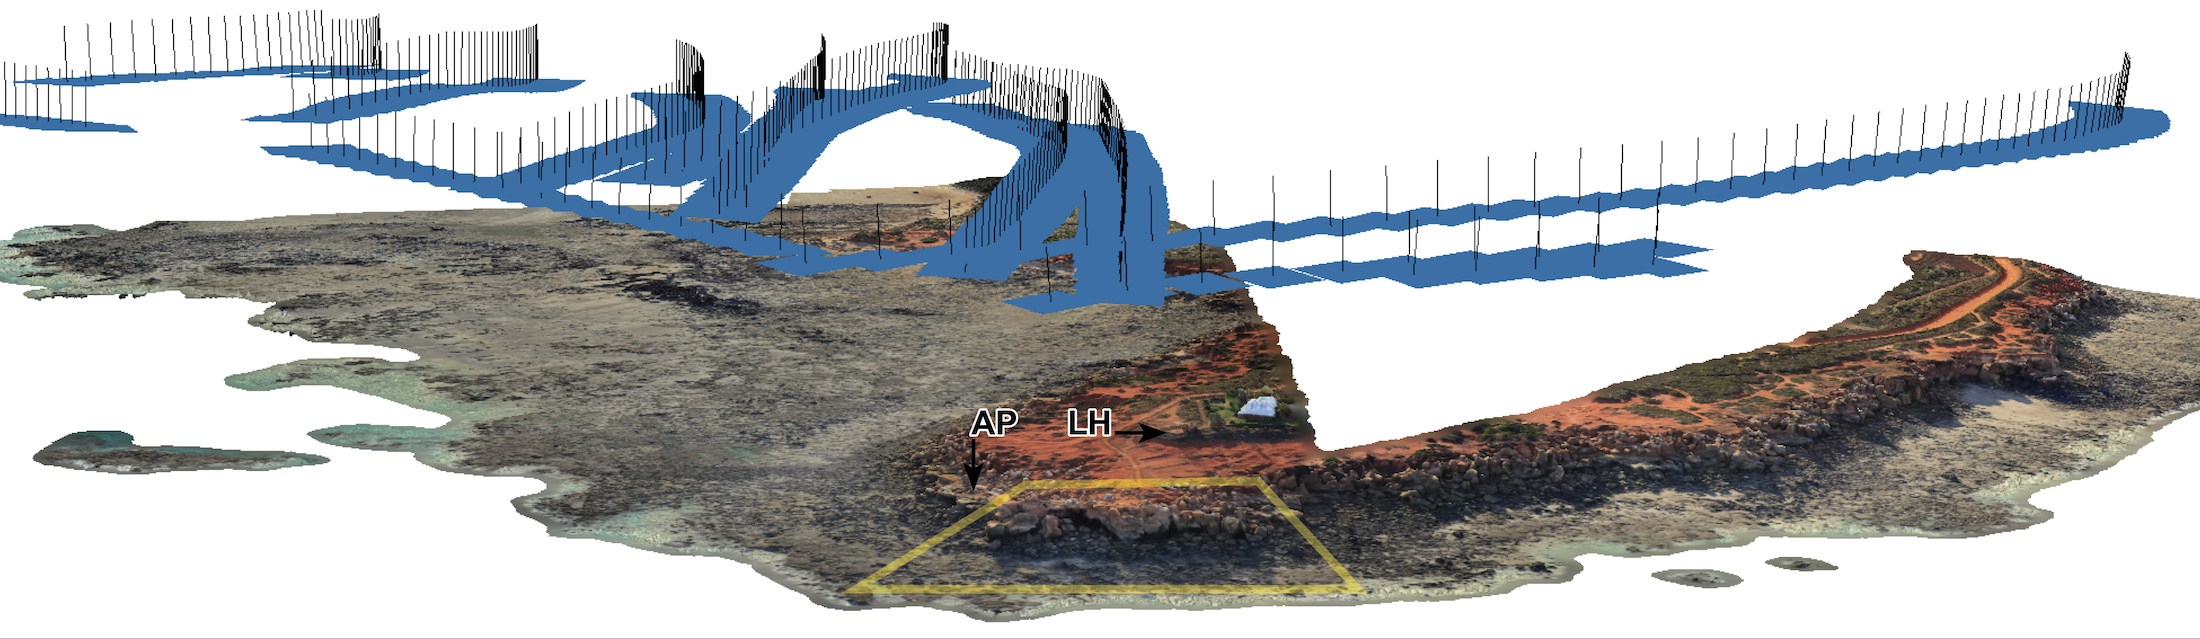 Point cloud of the intertidal zone at Minyirr